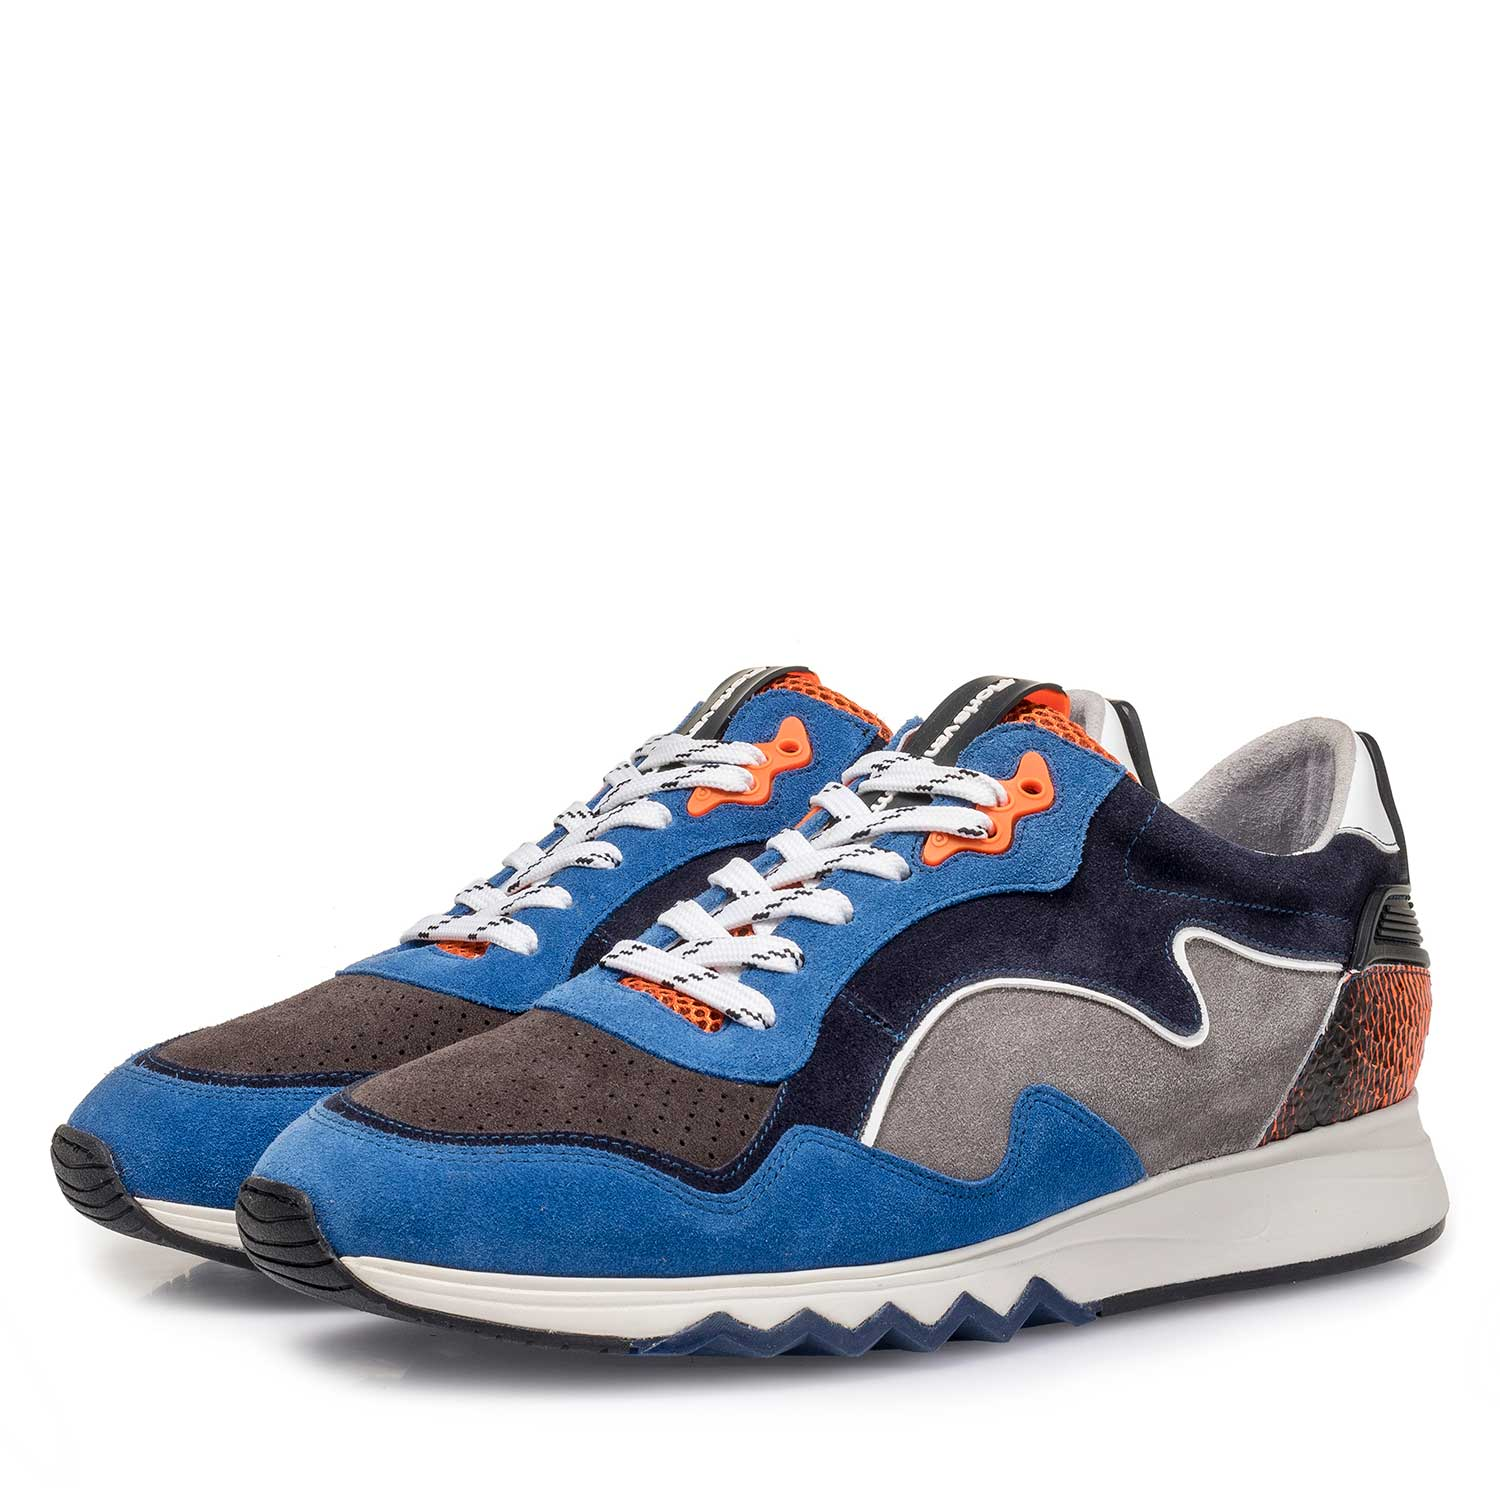 16092/05 - Blue-orange suede leather sneaker